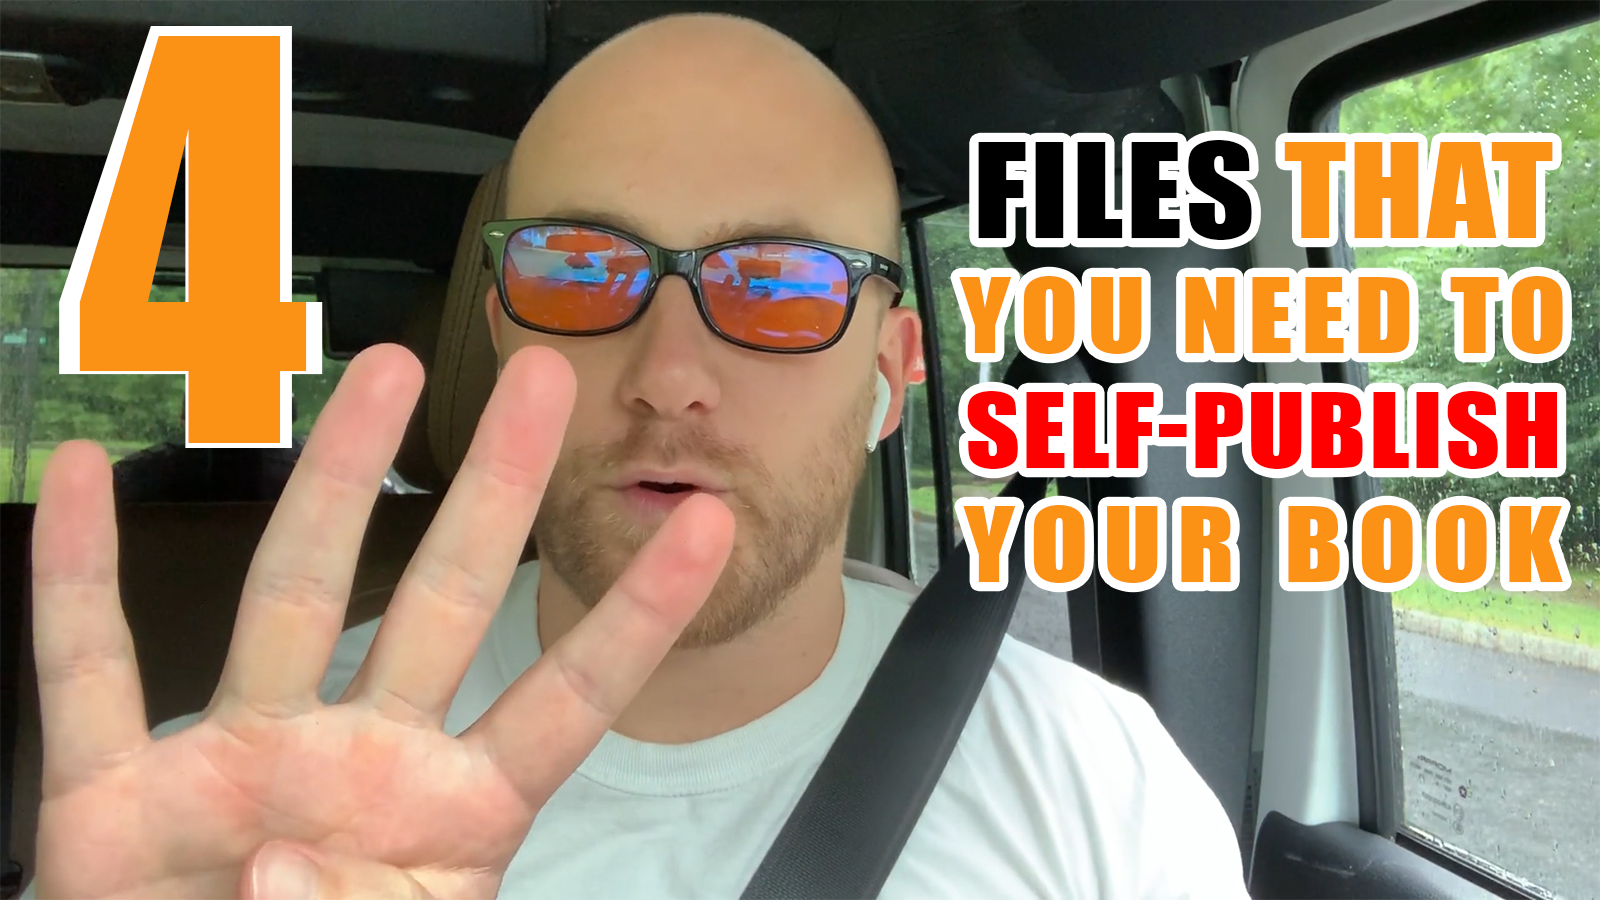 The 4 Files That You Need To Self-Publish Your Book